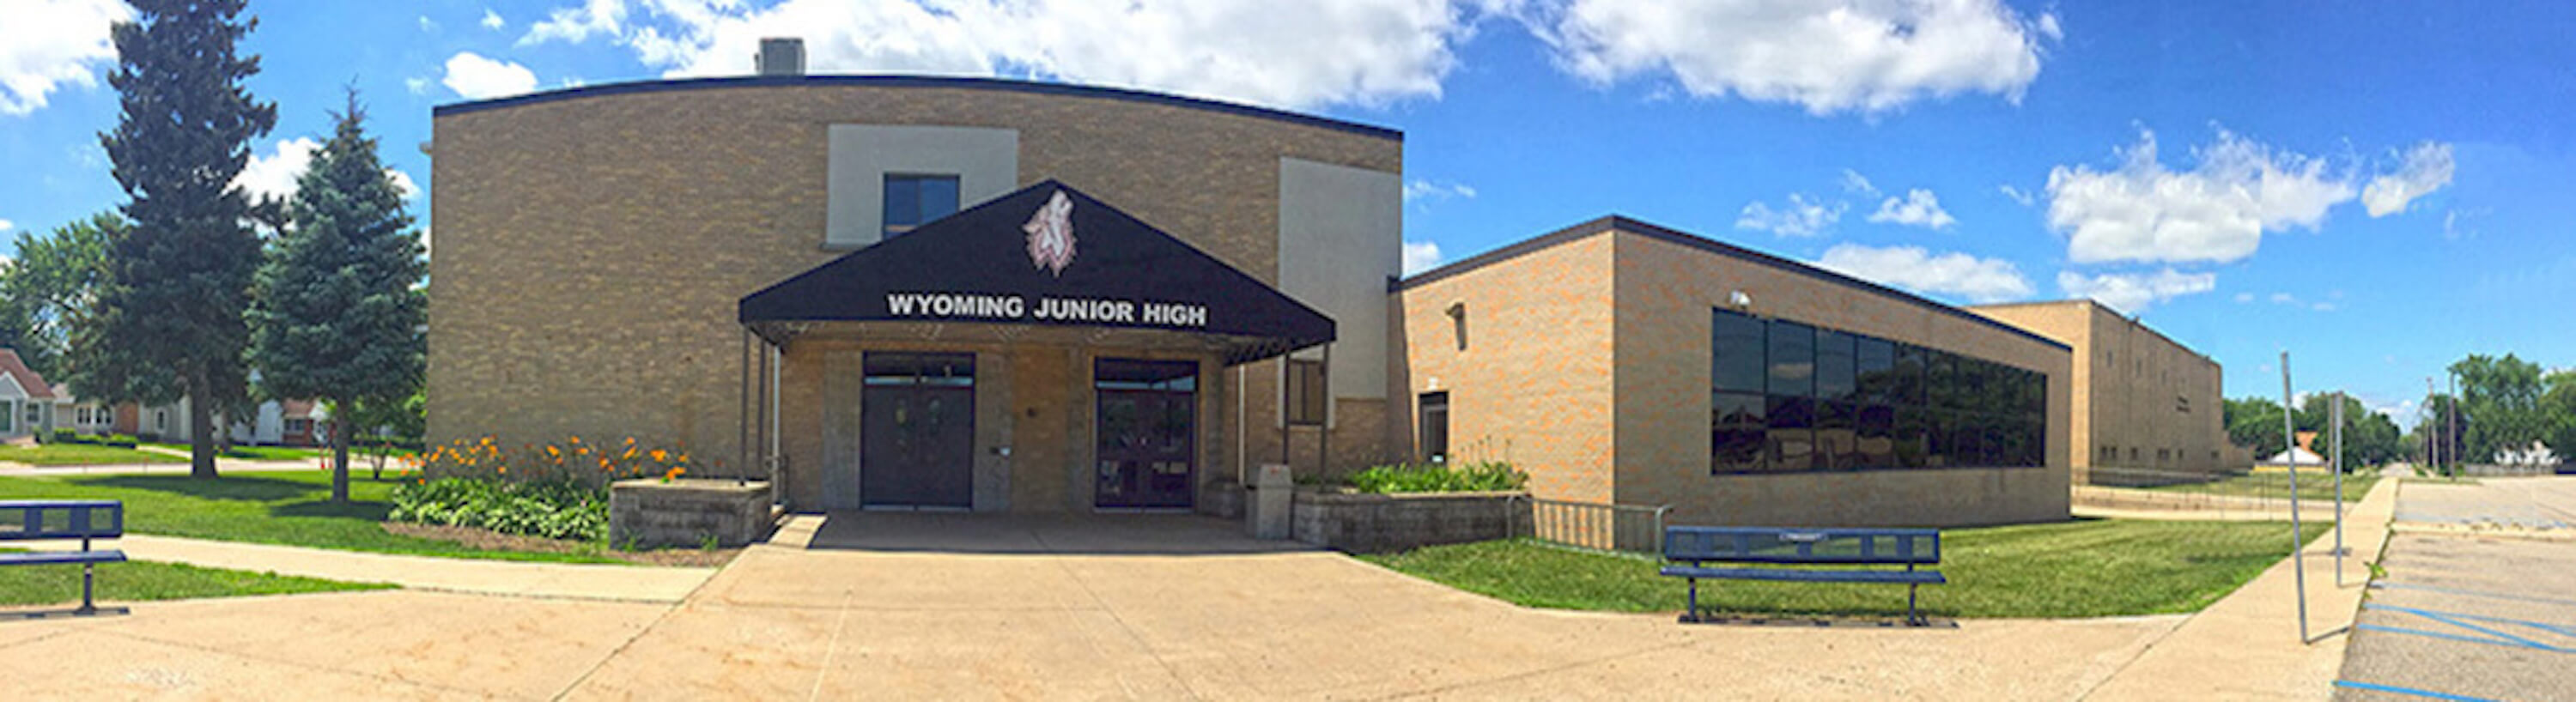 Photo of Wyoming Junior High School